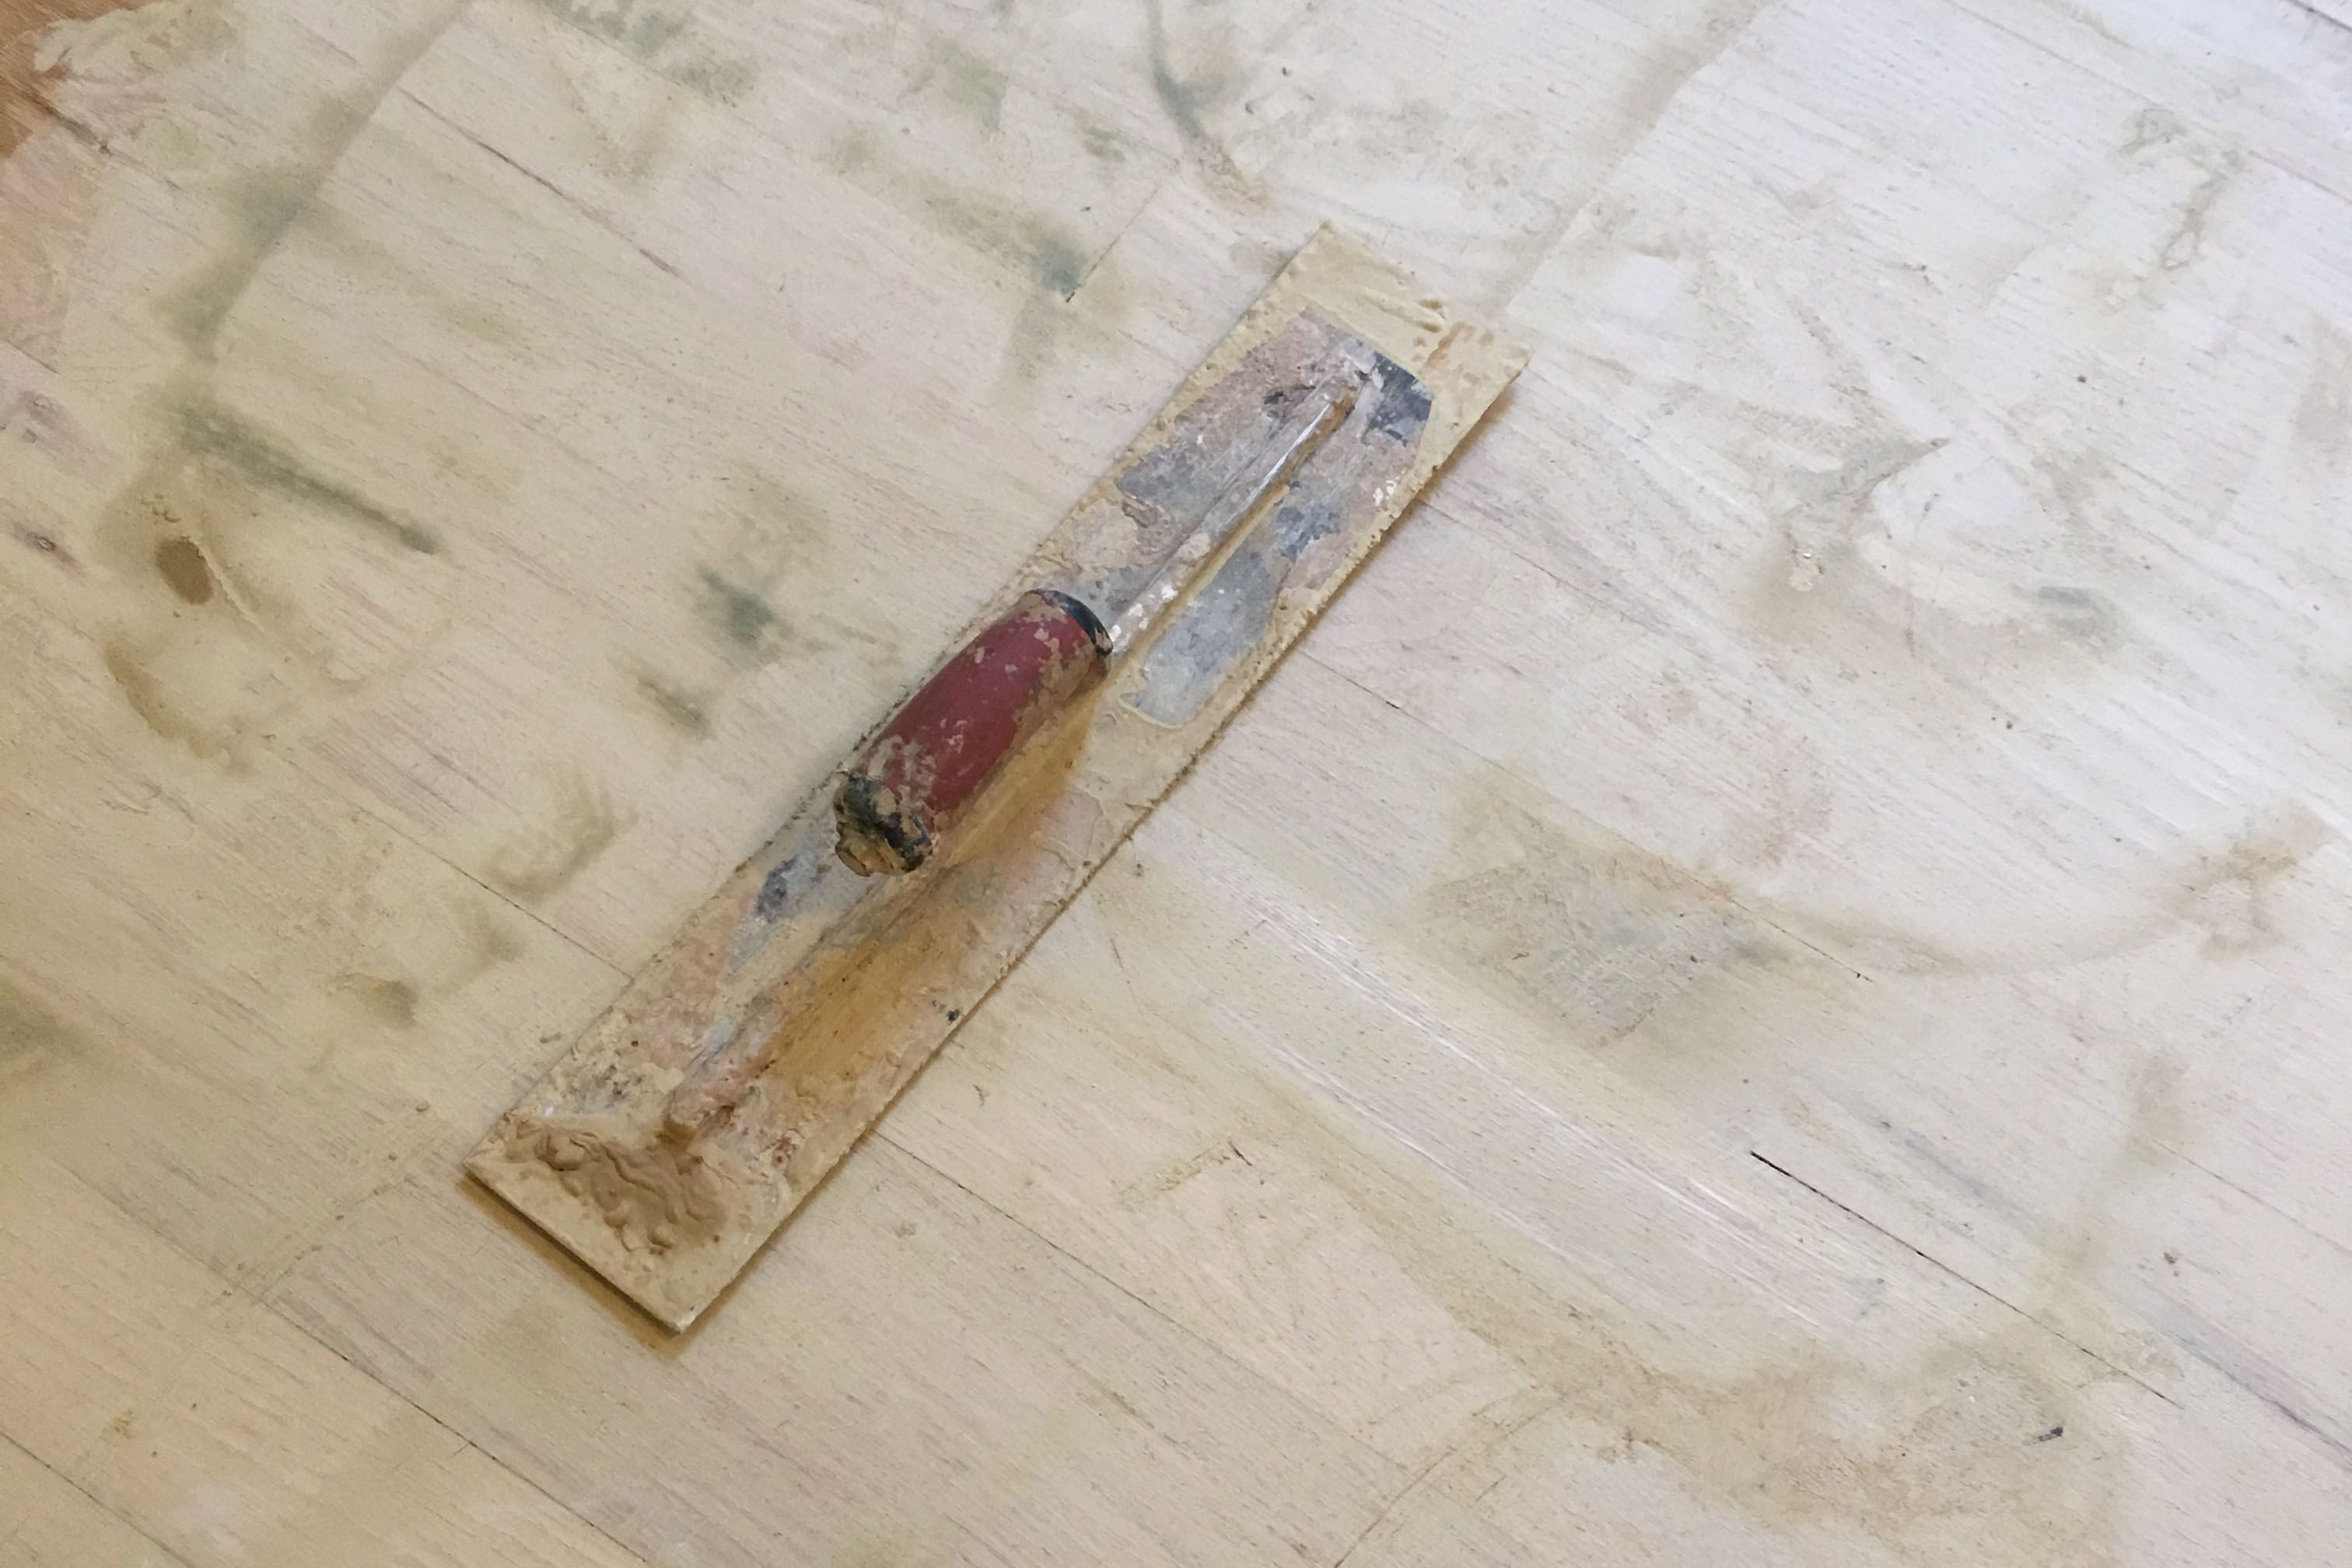 Restaining Hardwood Floors Darker Cost Of 7 Things to Know before You Refinish Hardwood Floors with Trough Hardwood Floor Manhattan Avenue Via Smallspaces About Com 579138783df78c173490f8a5